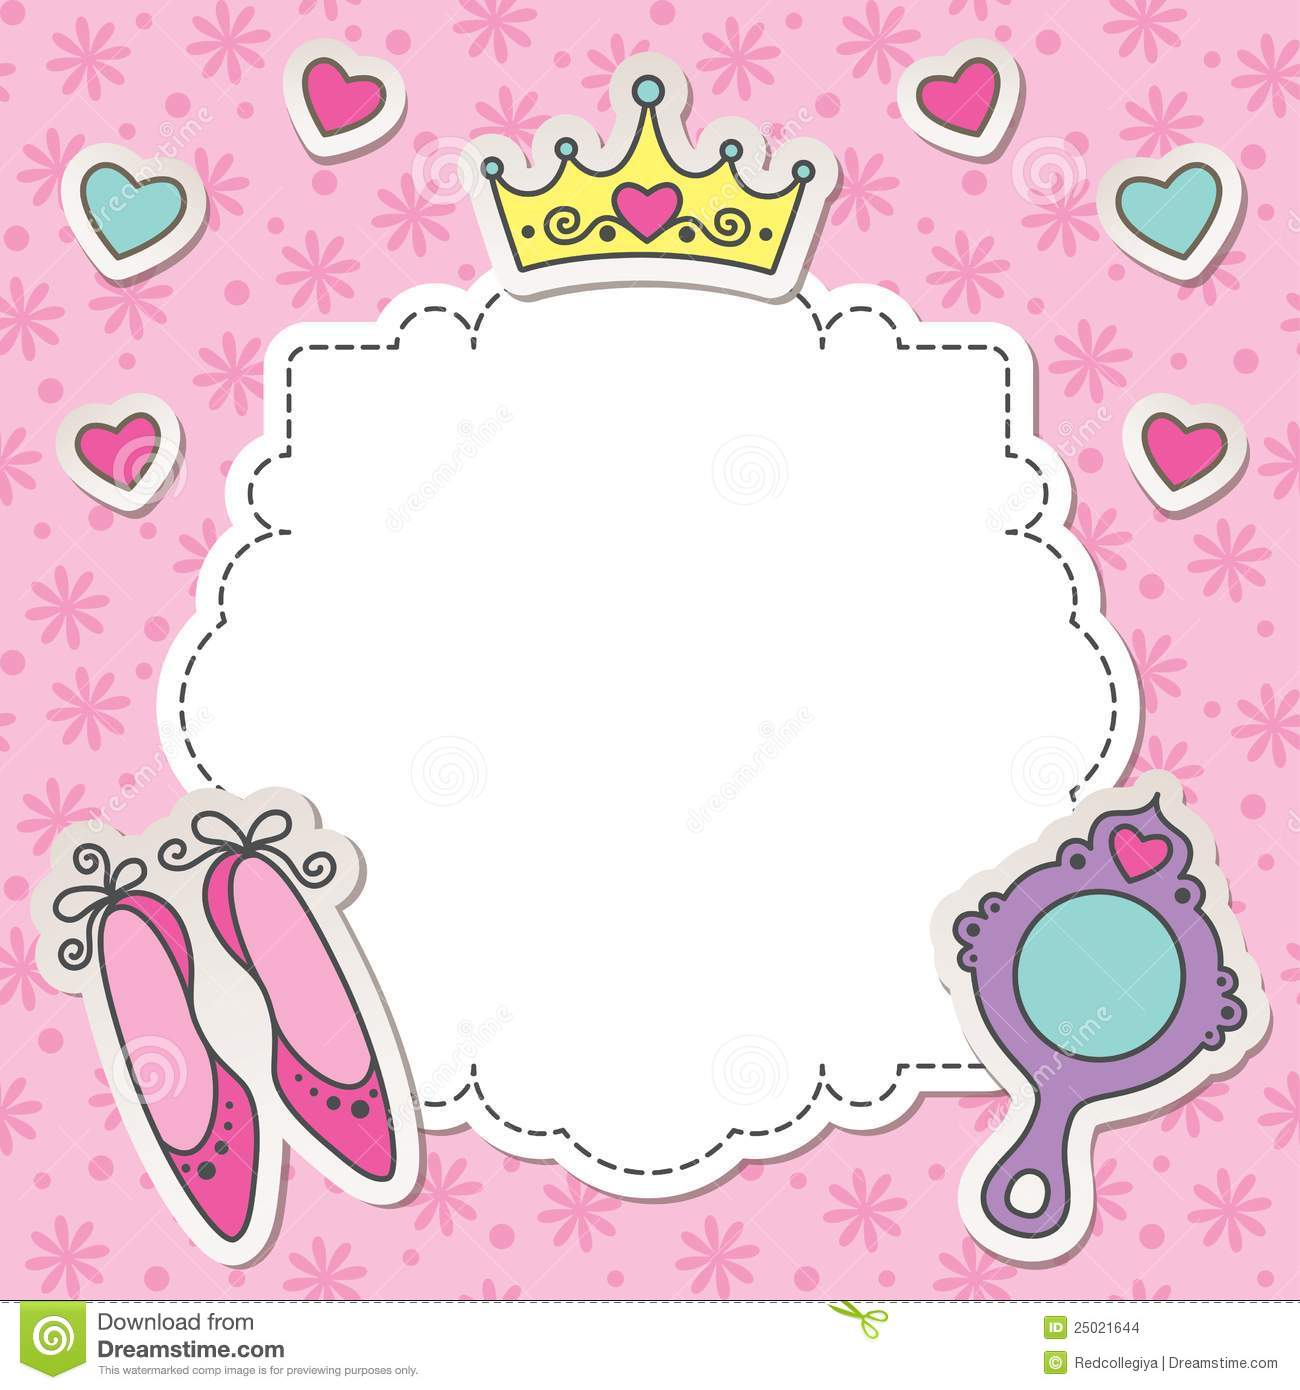 Princess shoes clip art